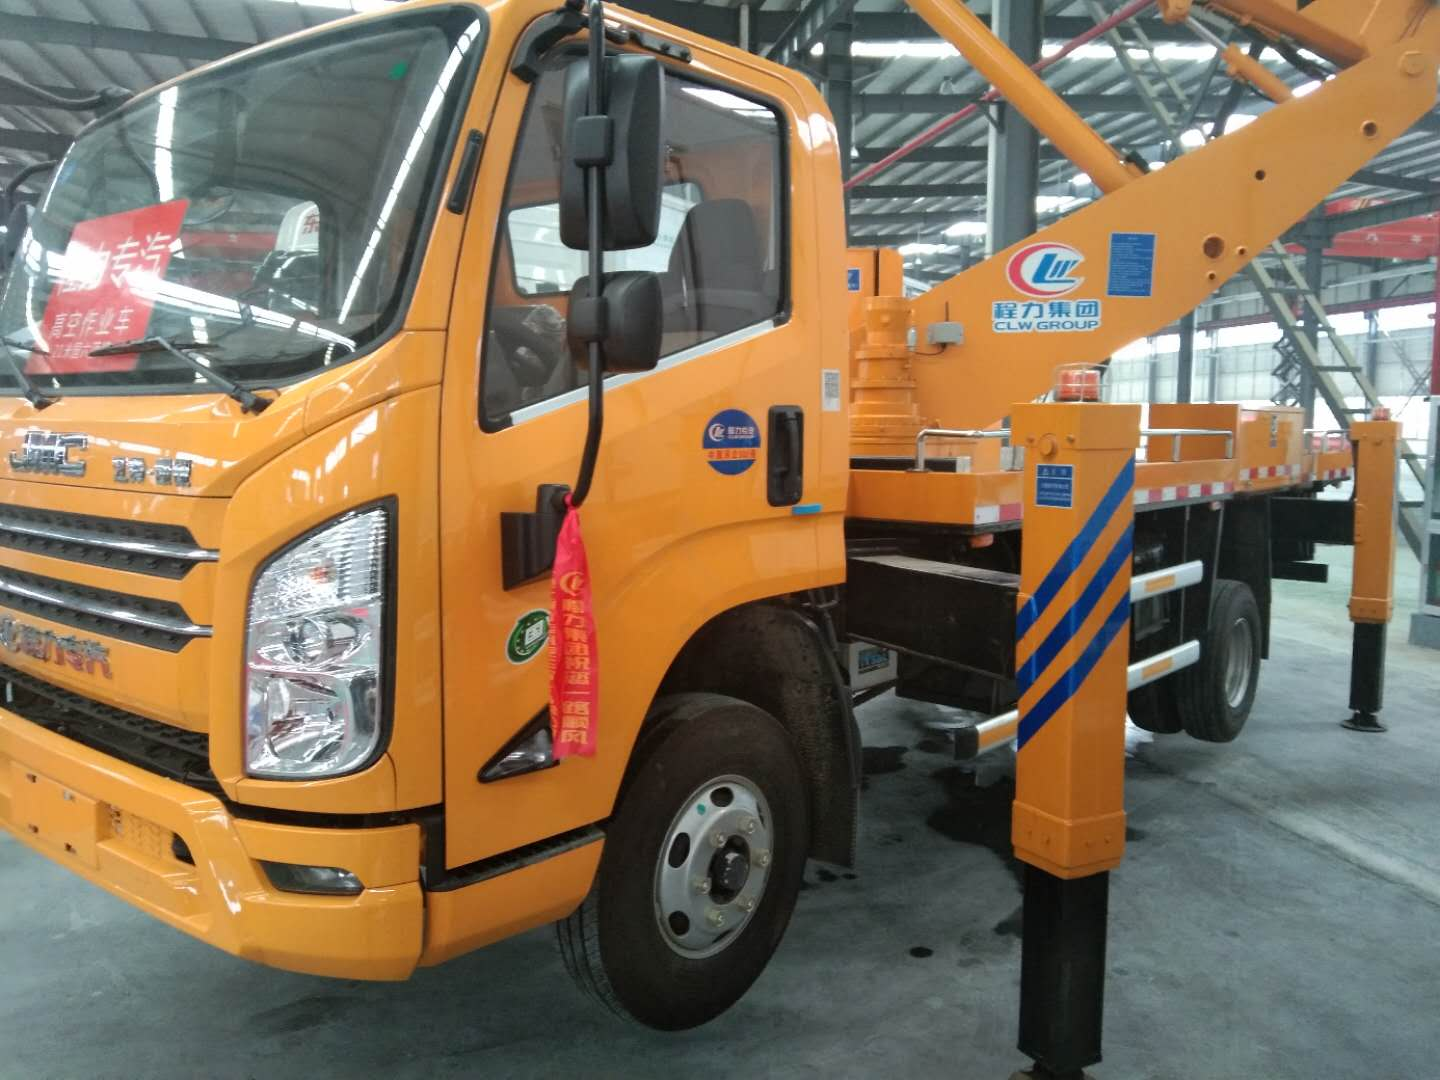 Overhead working trucks safe and effective